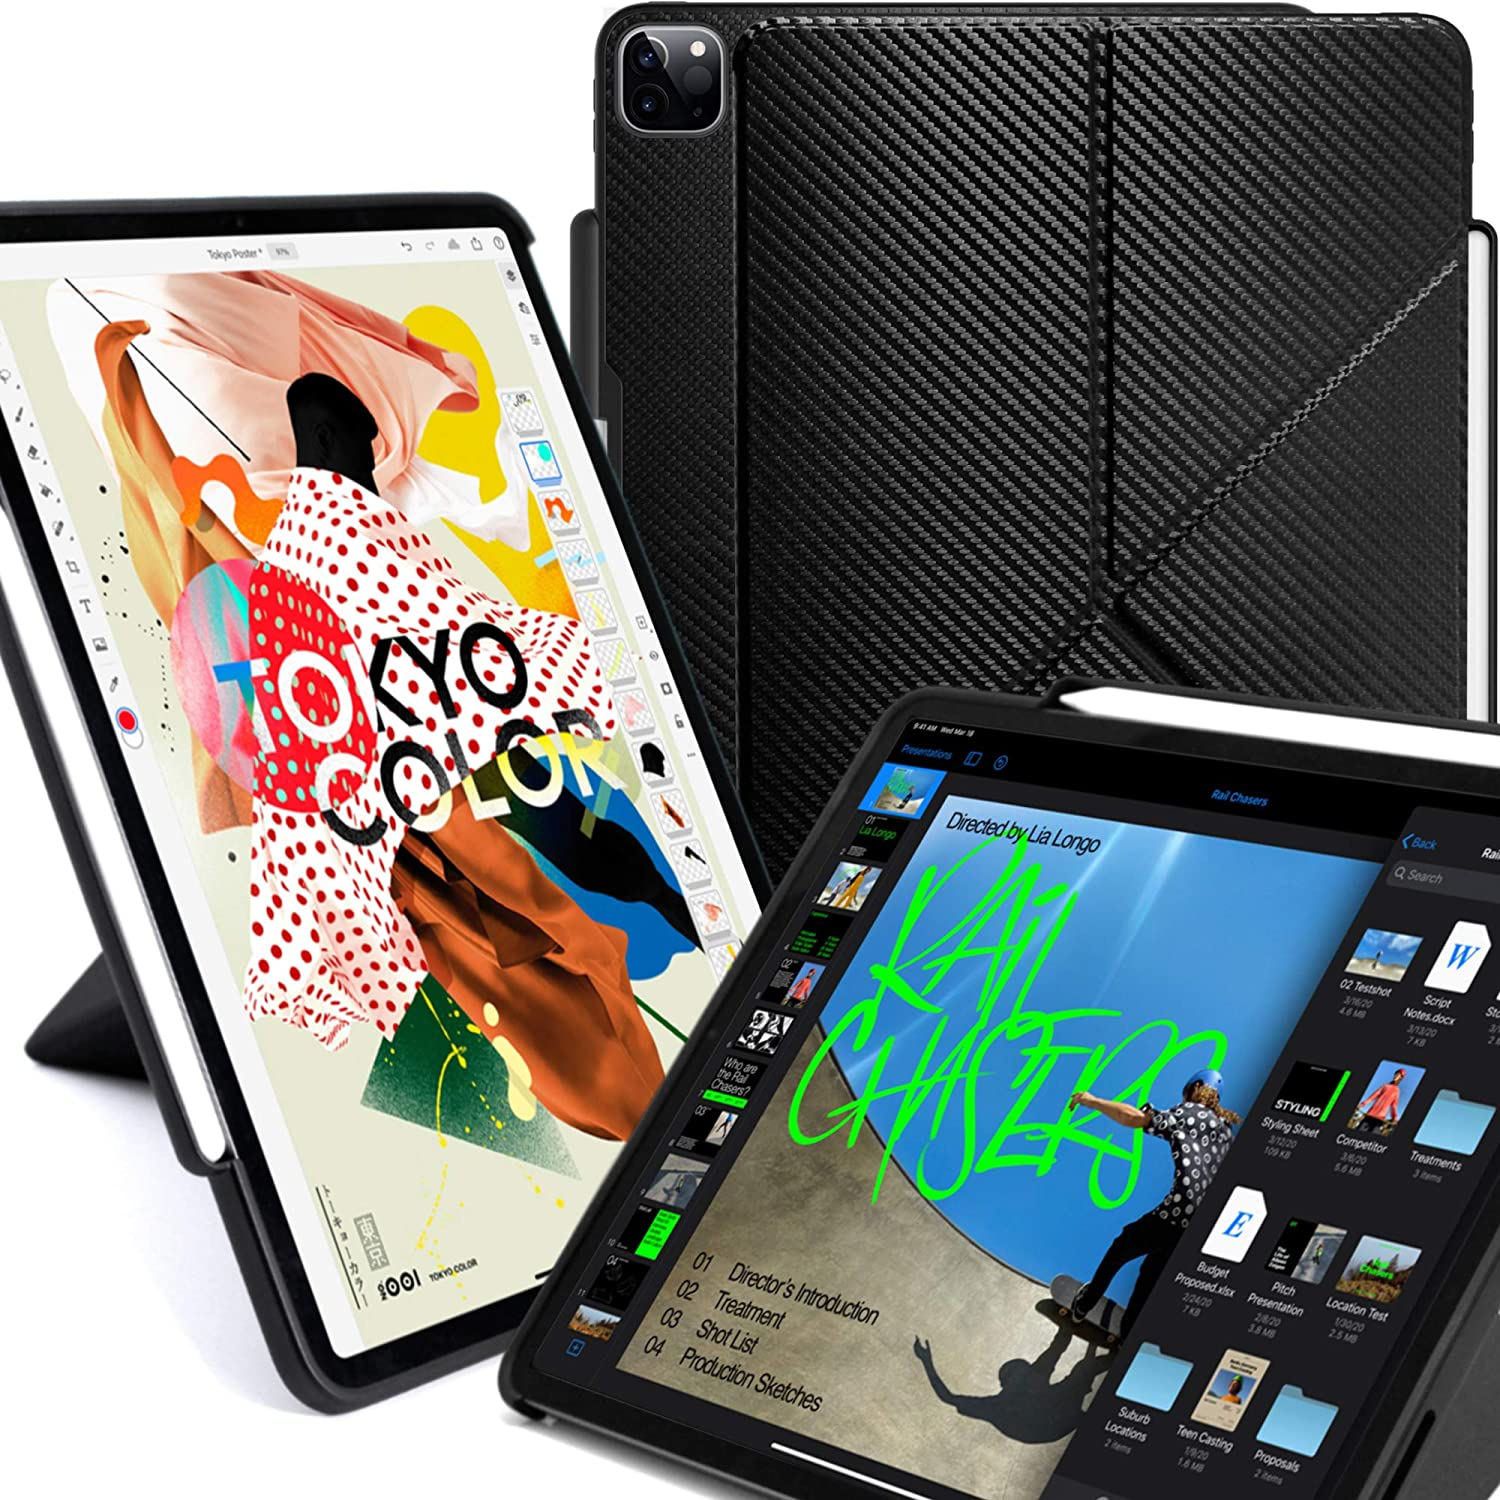 KHOMO iPad Case Pro 12.9 Case 4th Generation 2020 with Pencil Holder - Dual Origami Series - Horizontal and Vertical Stand - Supports Apple Pen Charging - Carbon Fiber (KHO-1685)